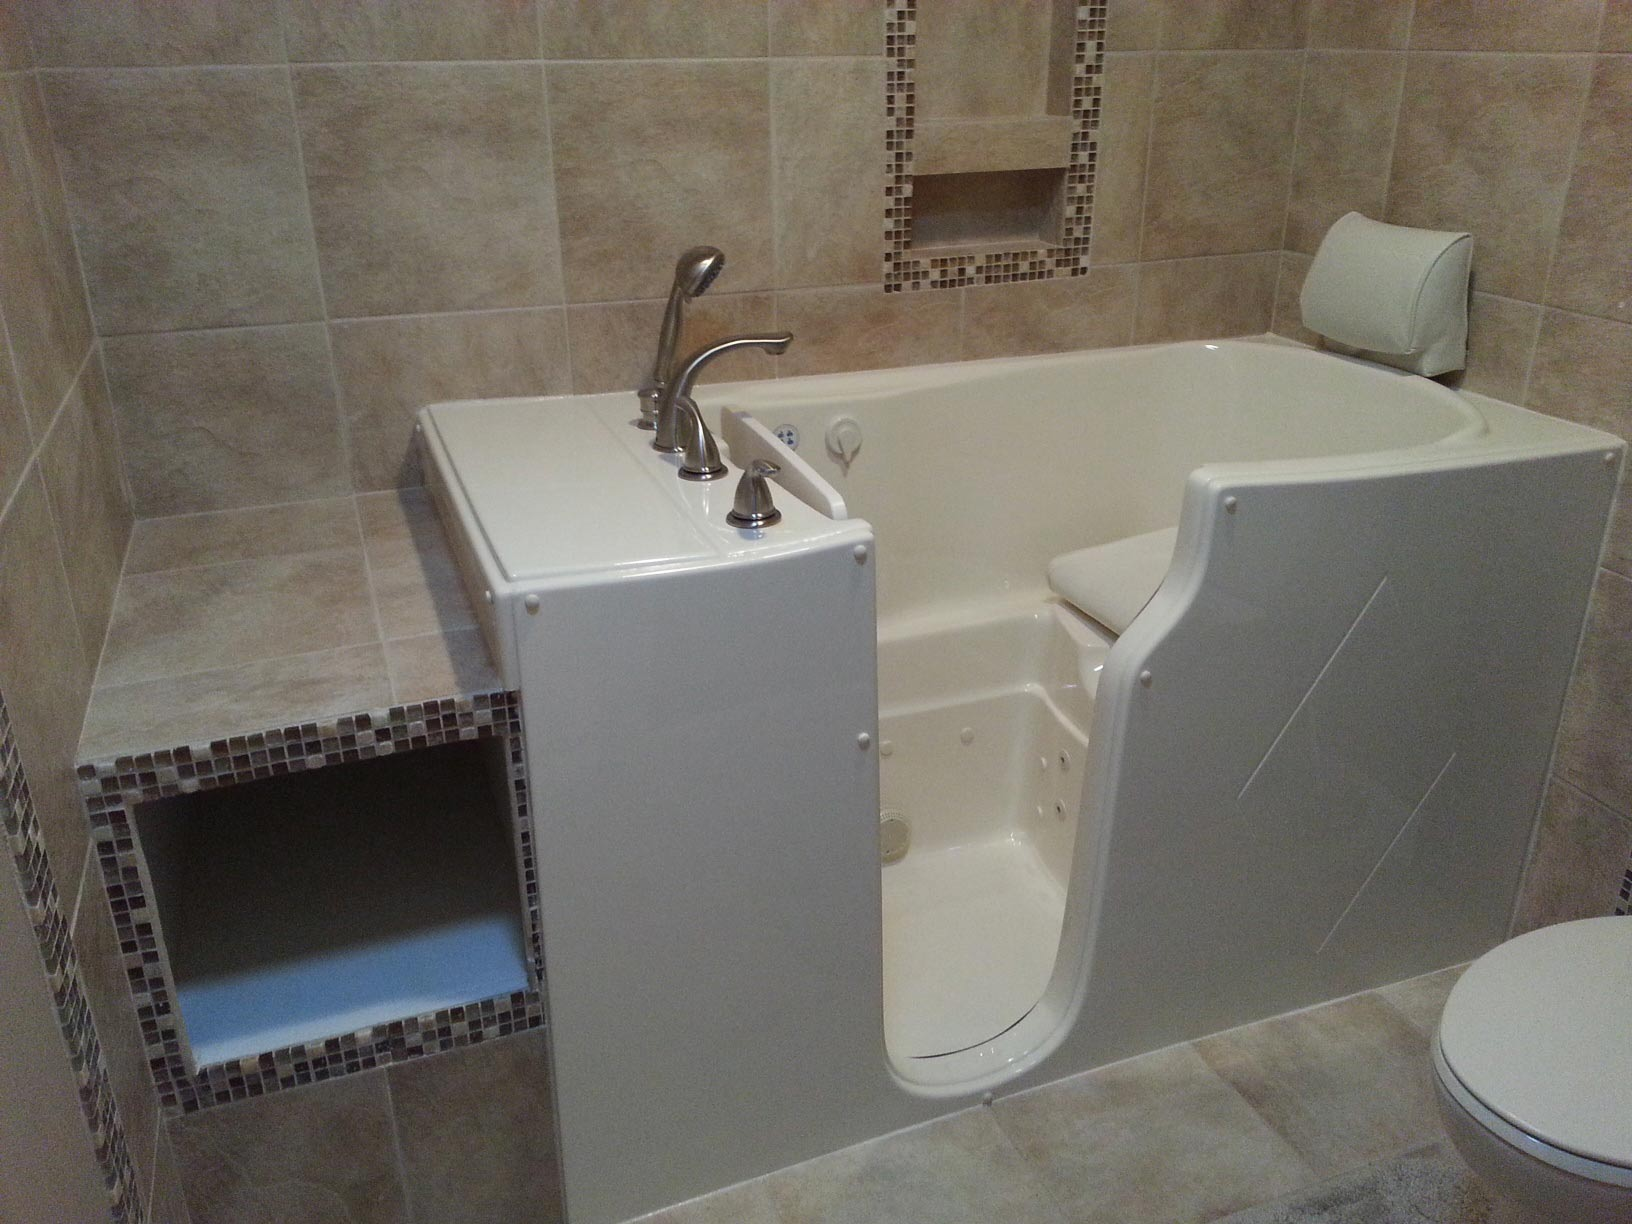 Walk In Tub With Heated Seat. theratub walk in tubs image Walk In Tub Reviews  Ratings and Comparisons